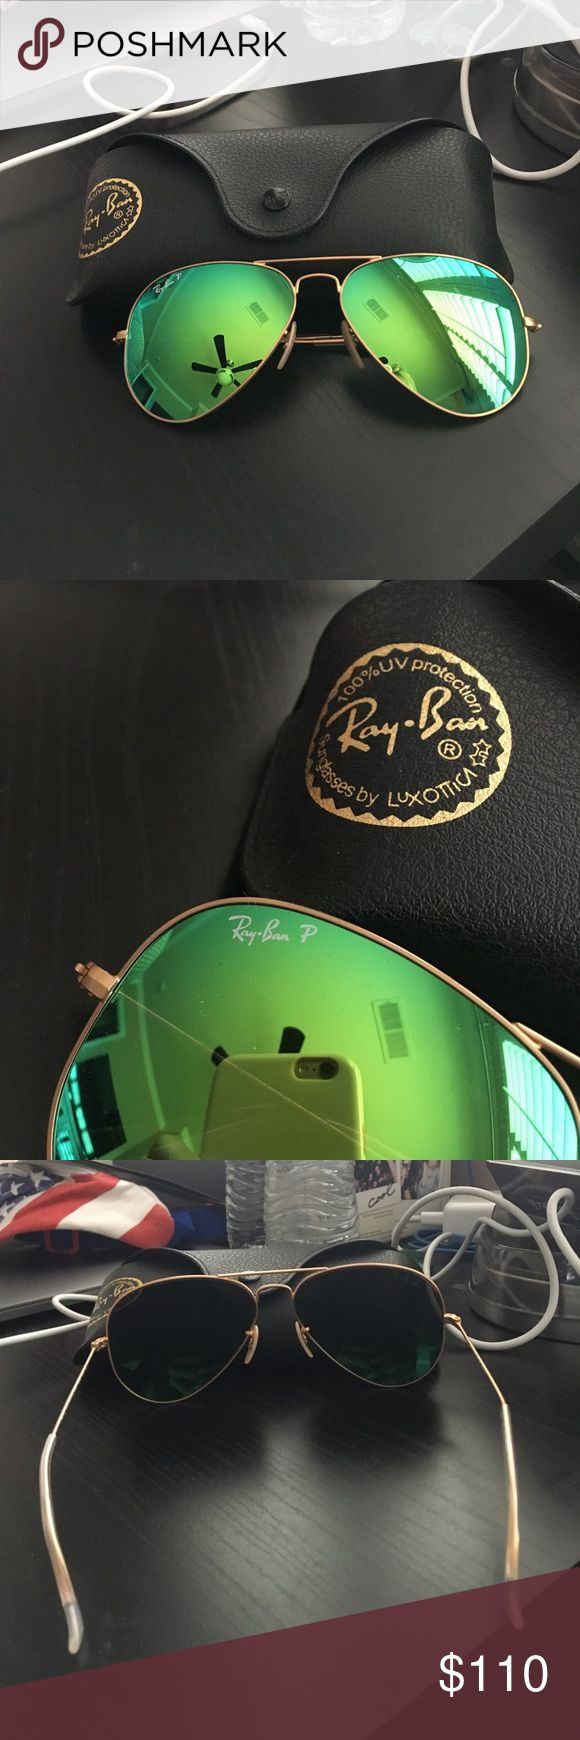 Ray Ban polarized green reflective aviators Brand new in great condition Ray-Ban Accessories Sunglasses